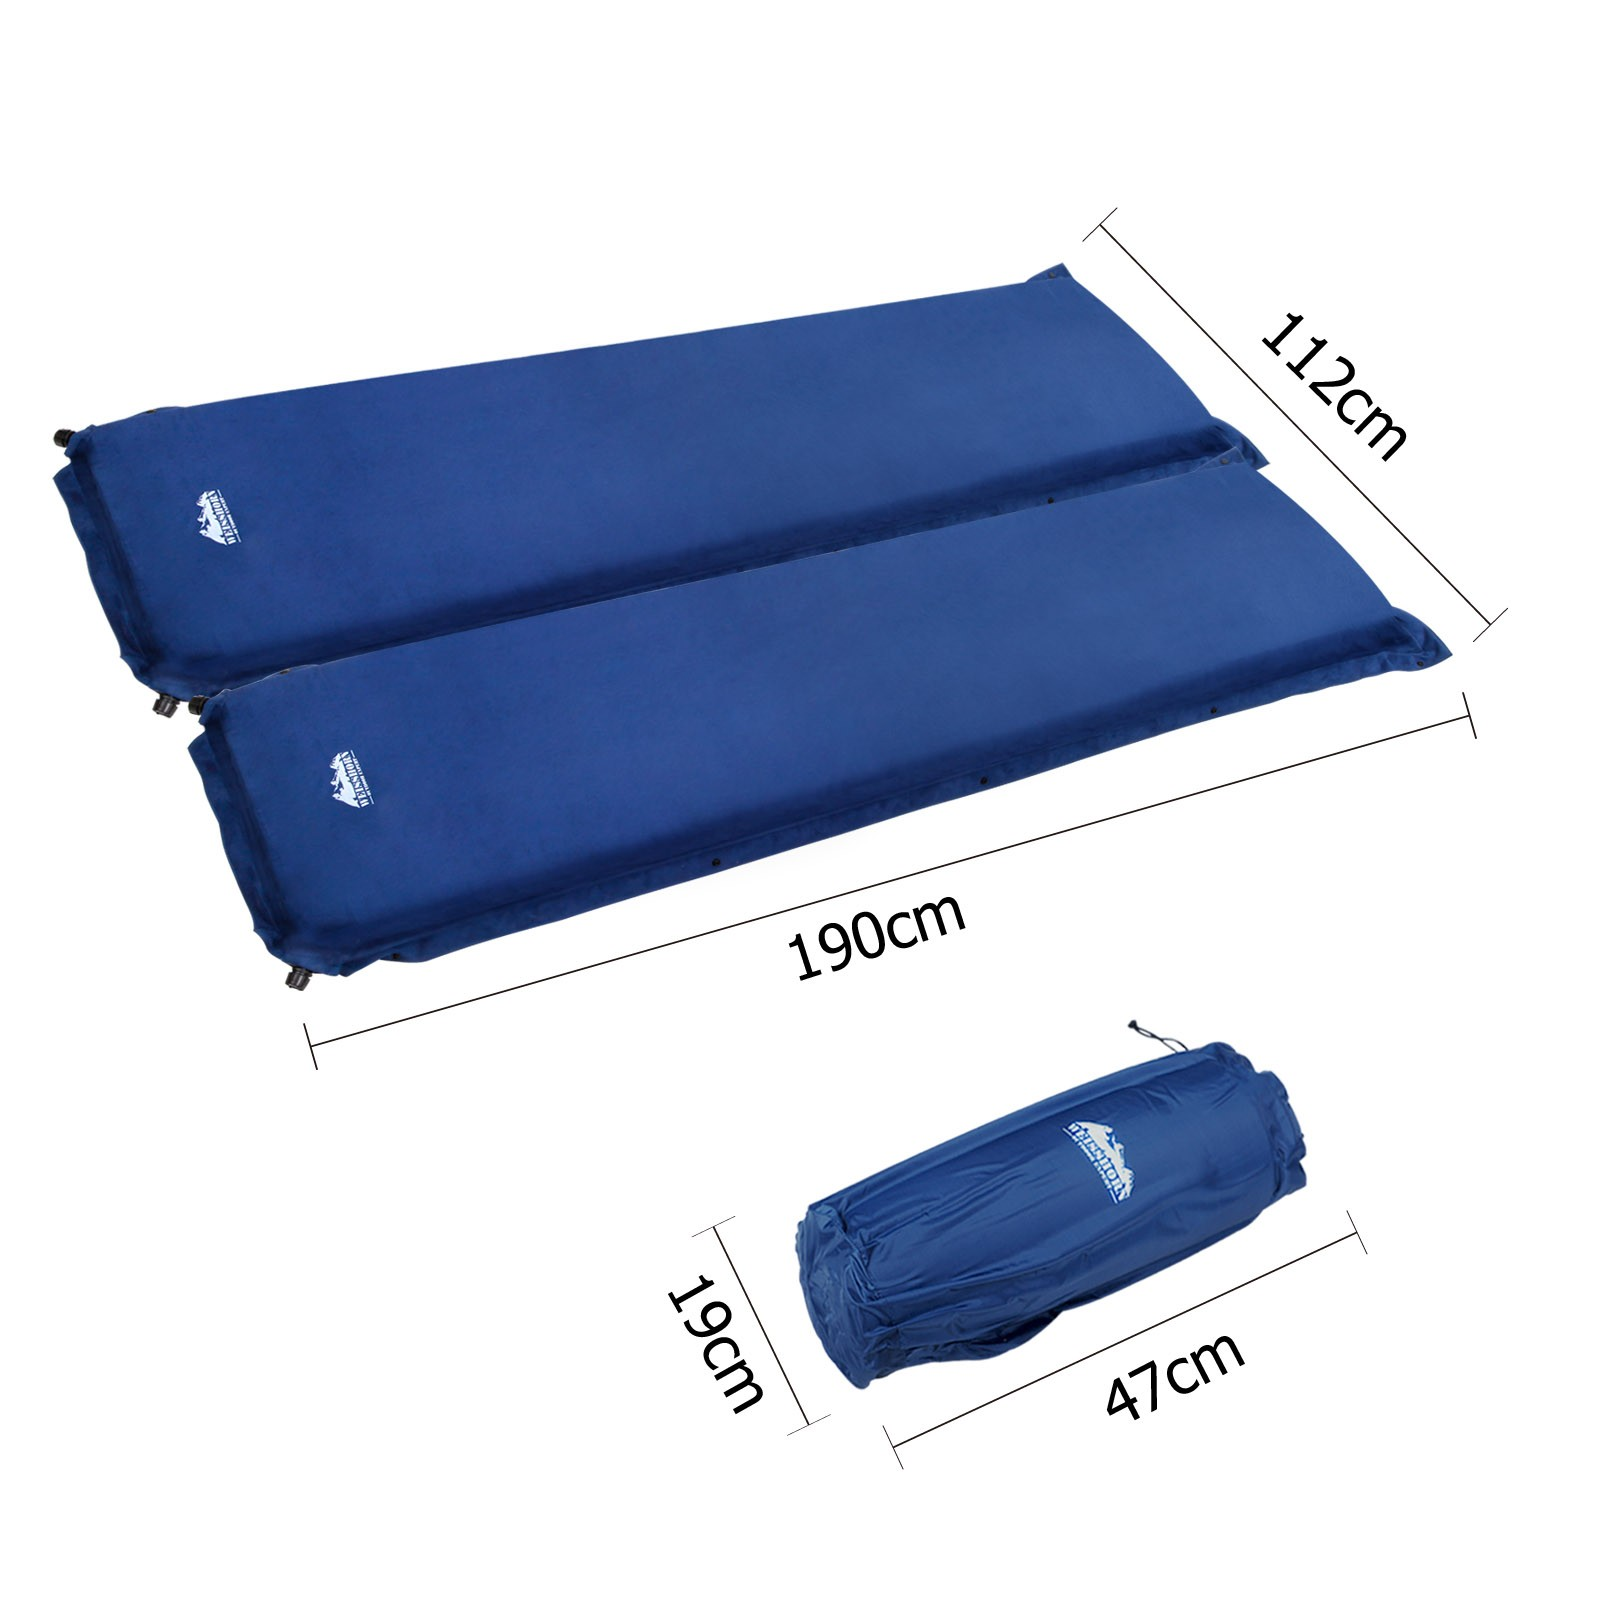 Weisshorn Double Self inflating Mattress Mat Sleeping Pad Air Bed Camping  Hiking Airbed